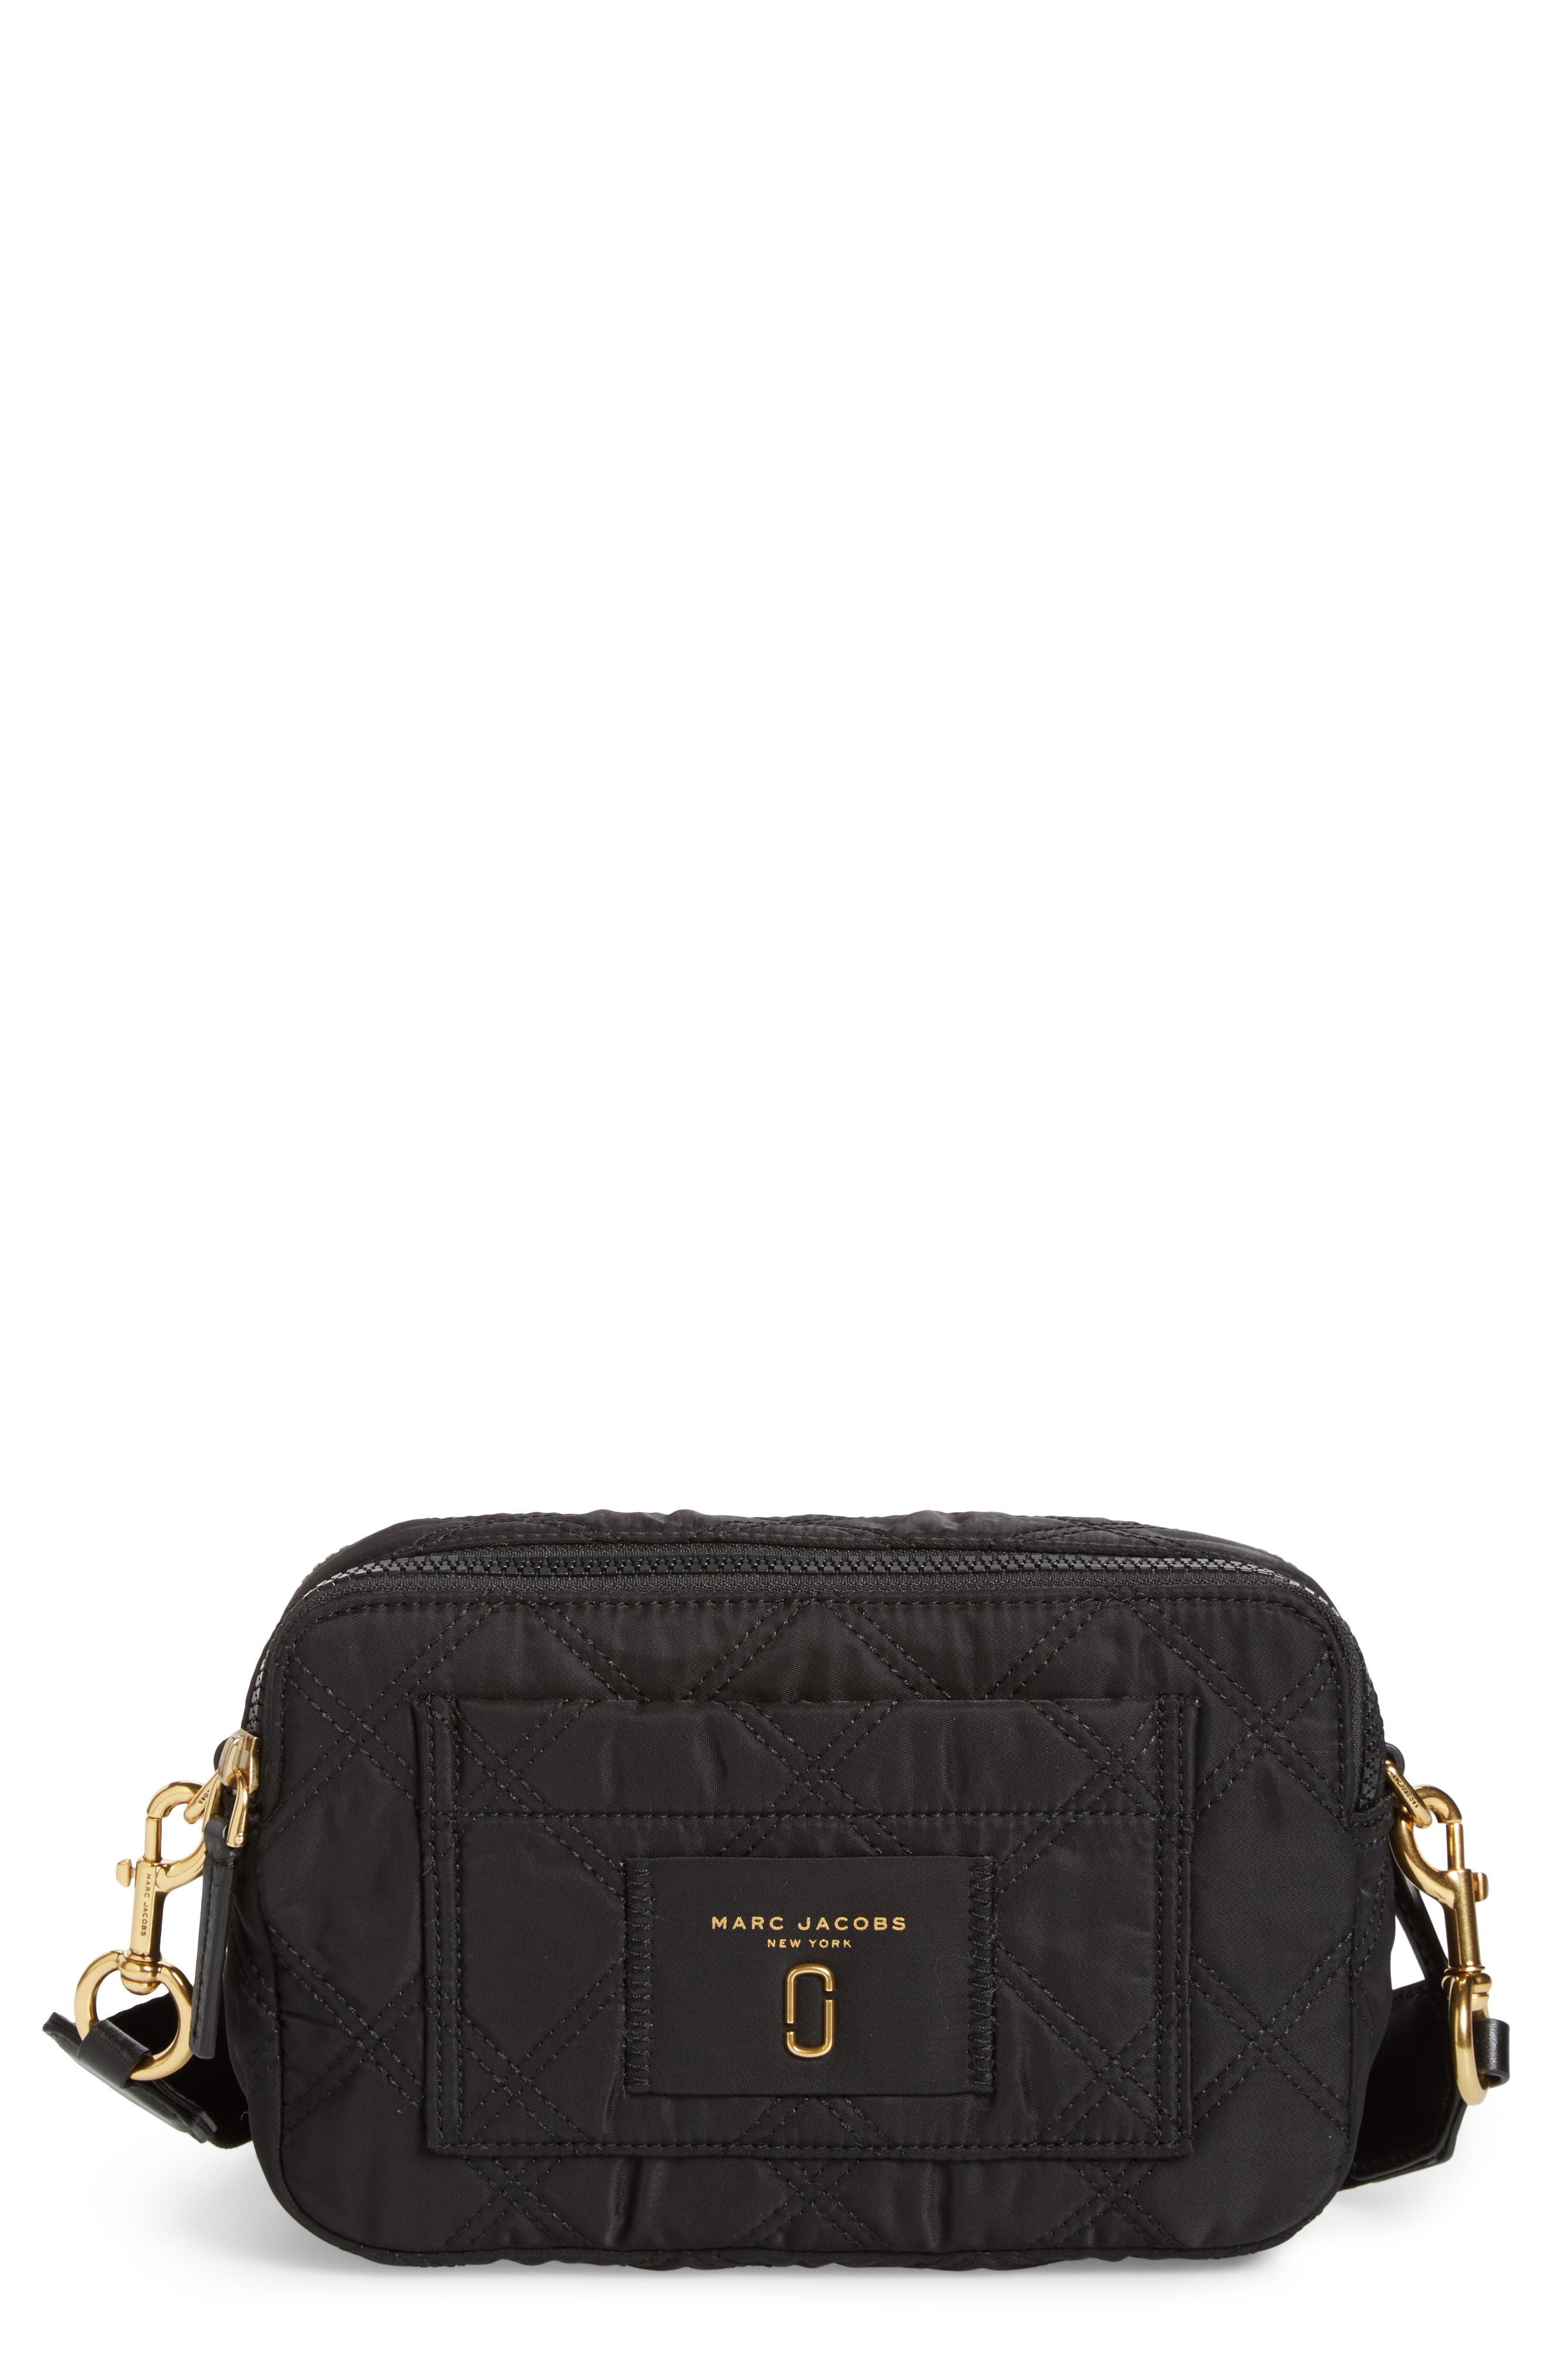 Alternate Image 1 Selected - MARC JACOBS Nylon Knot Crossbody Bag